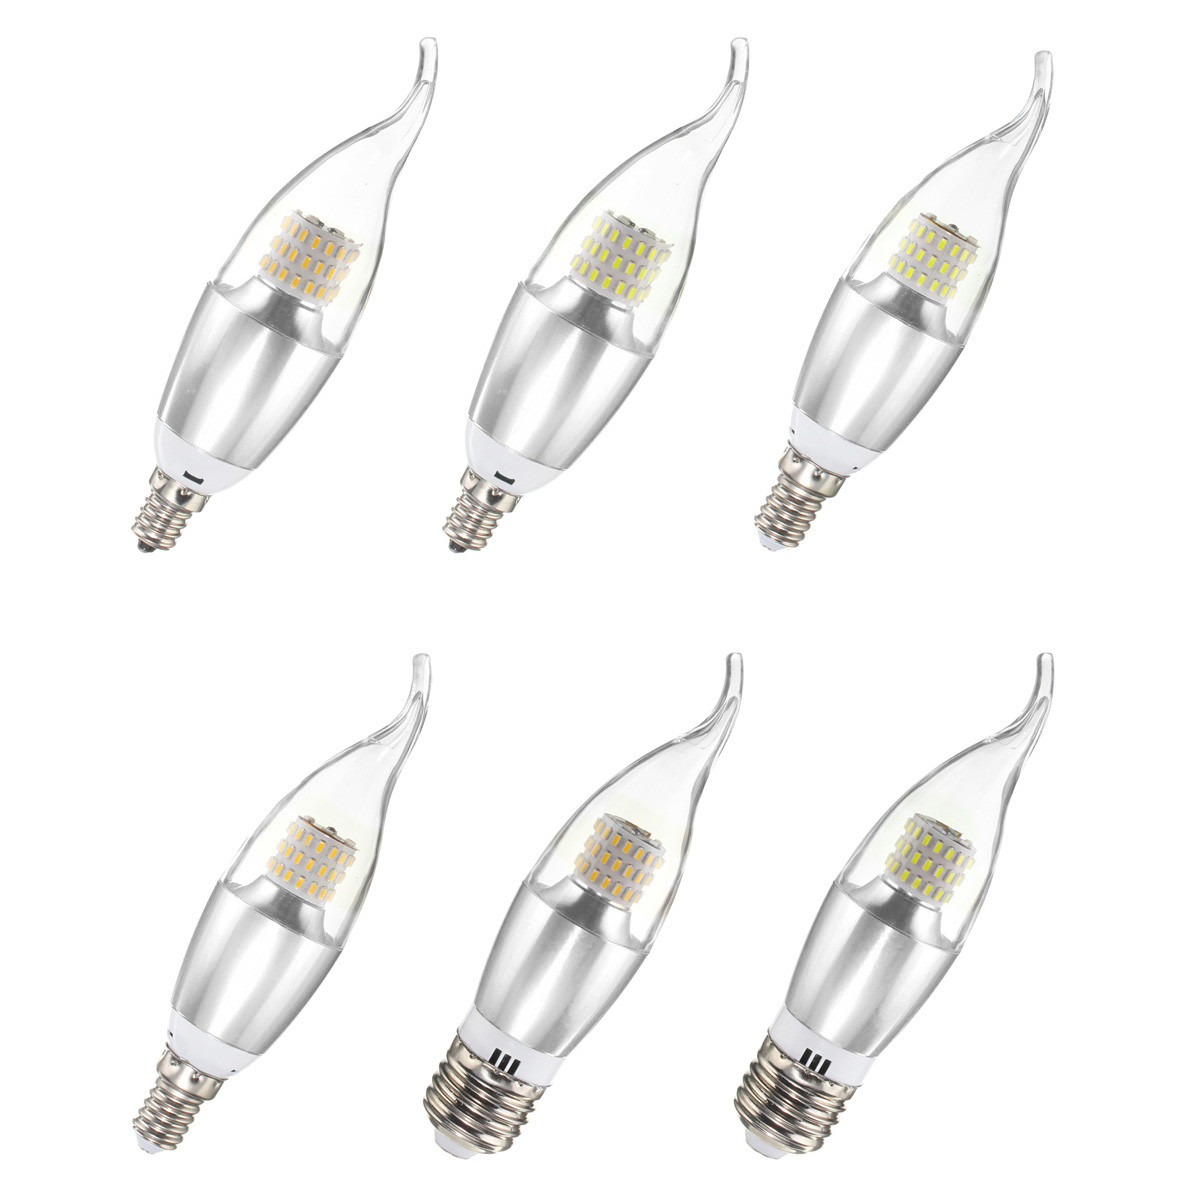 Dimmable E27 E14 E12 7w 60 Smd Led Pure White Warm